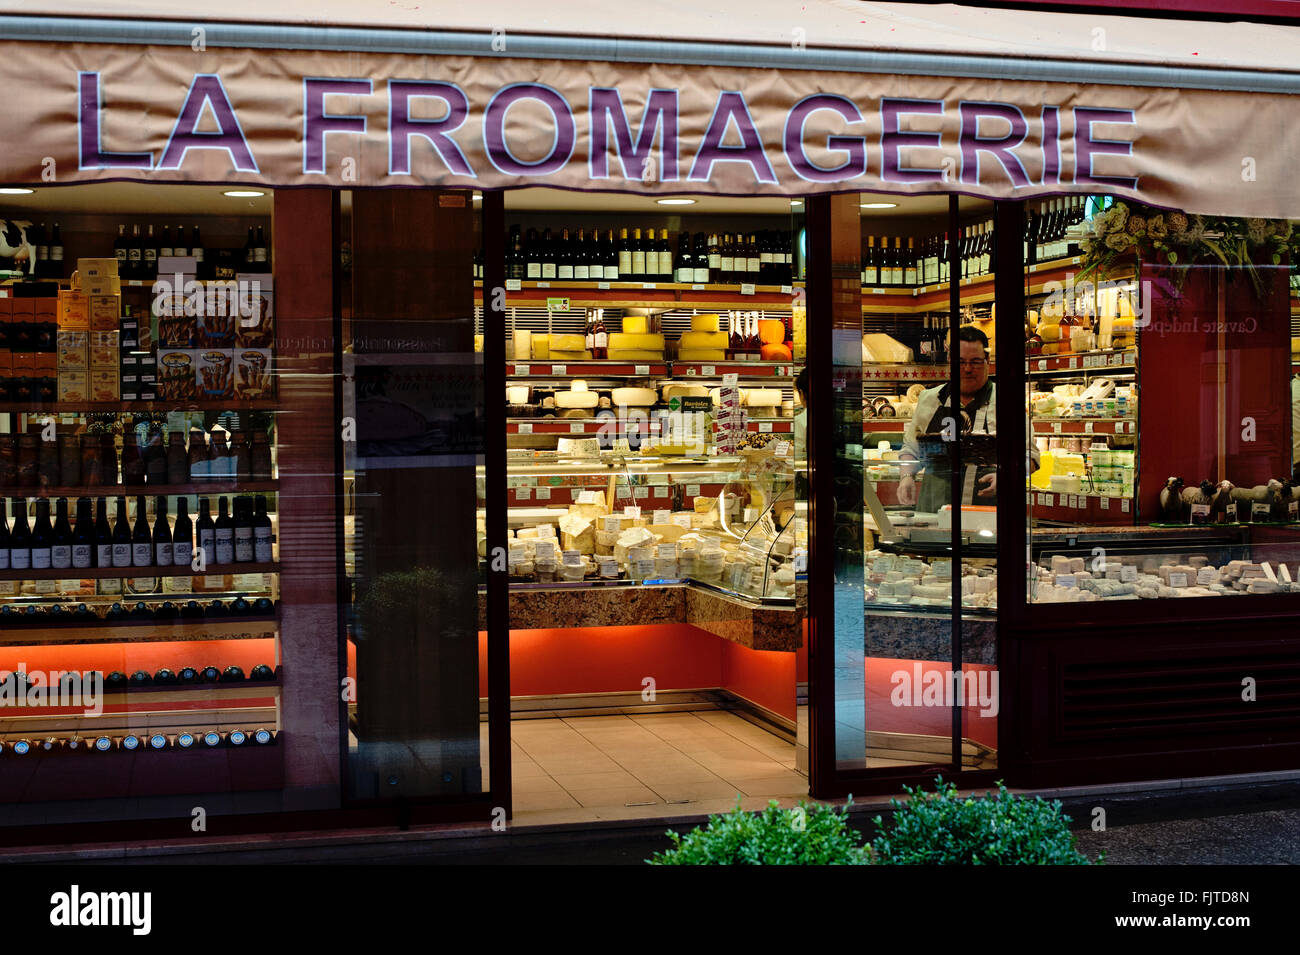 Cheese store in Paris, France - Stock Image